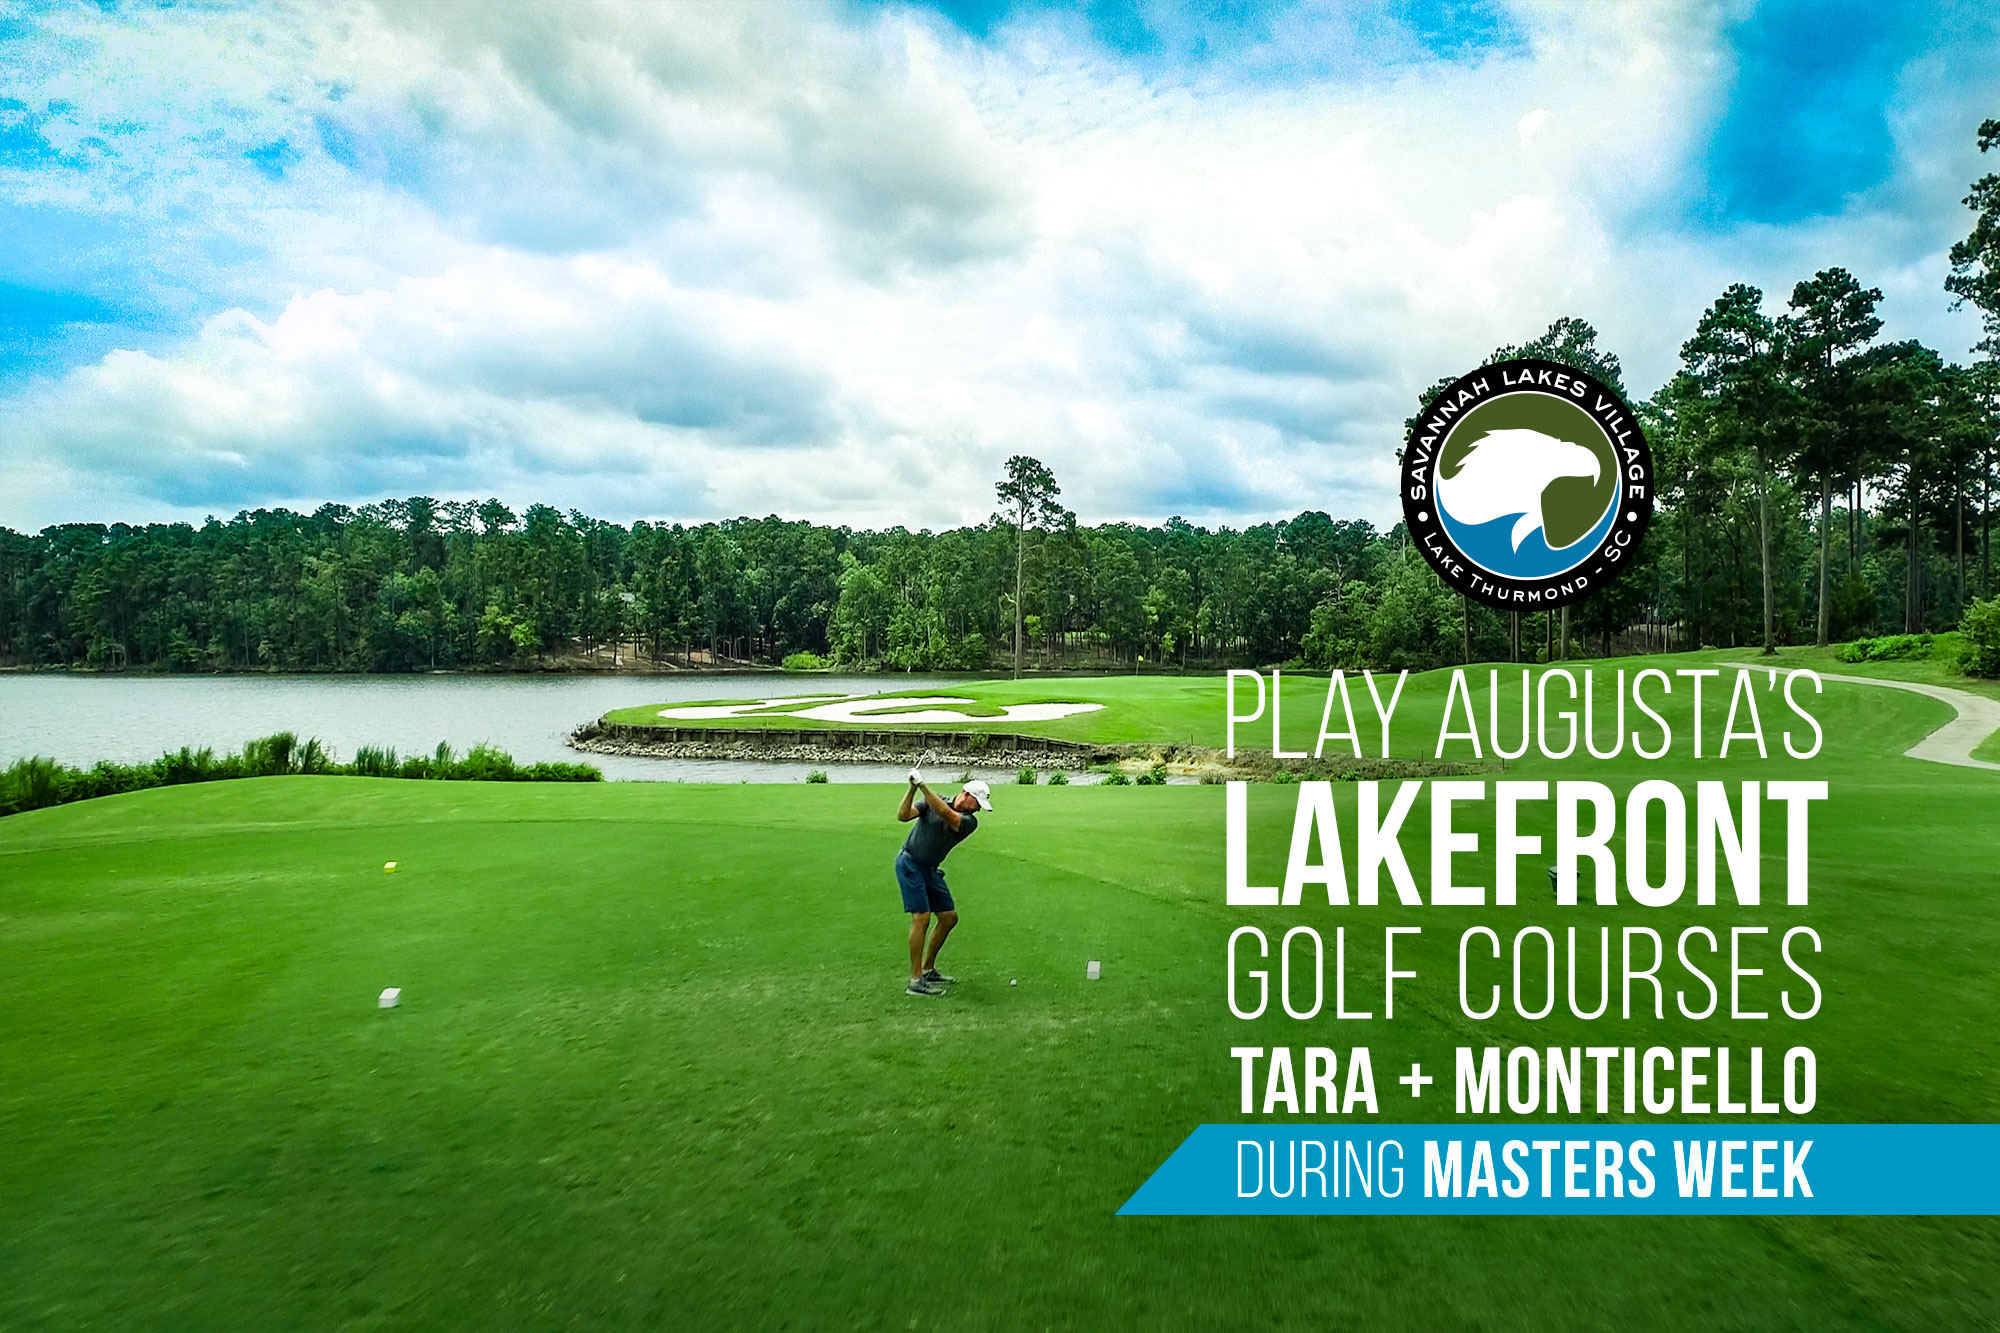 play-augustas-lakefront-golf-courses